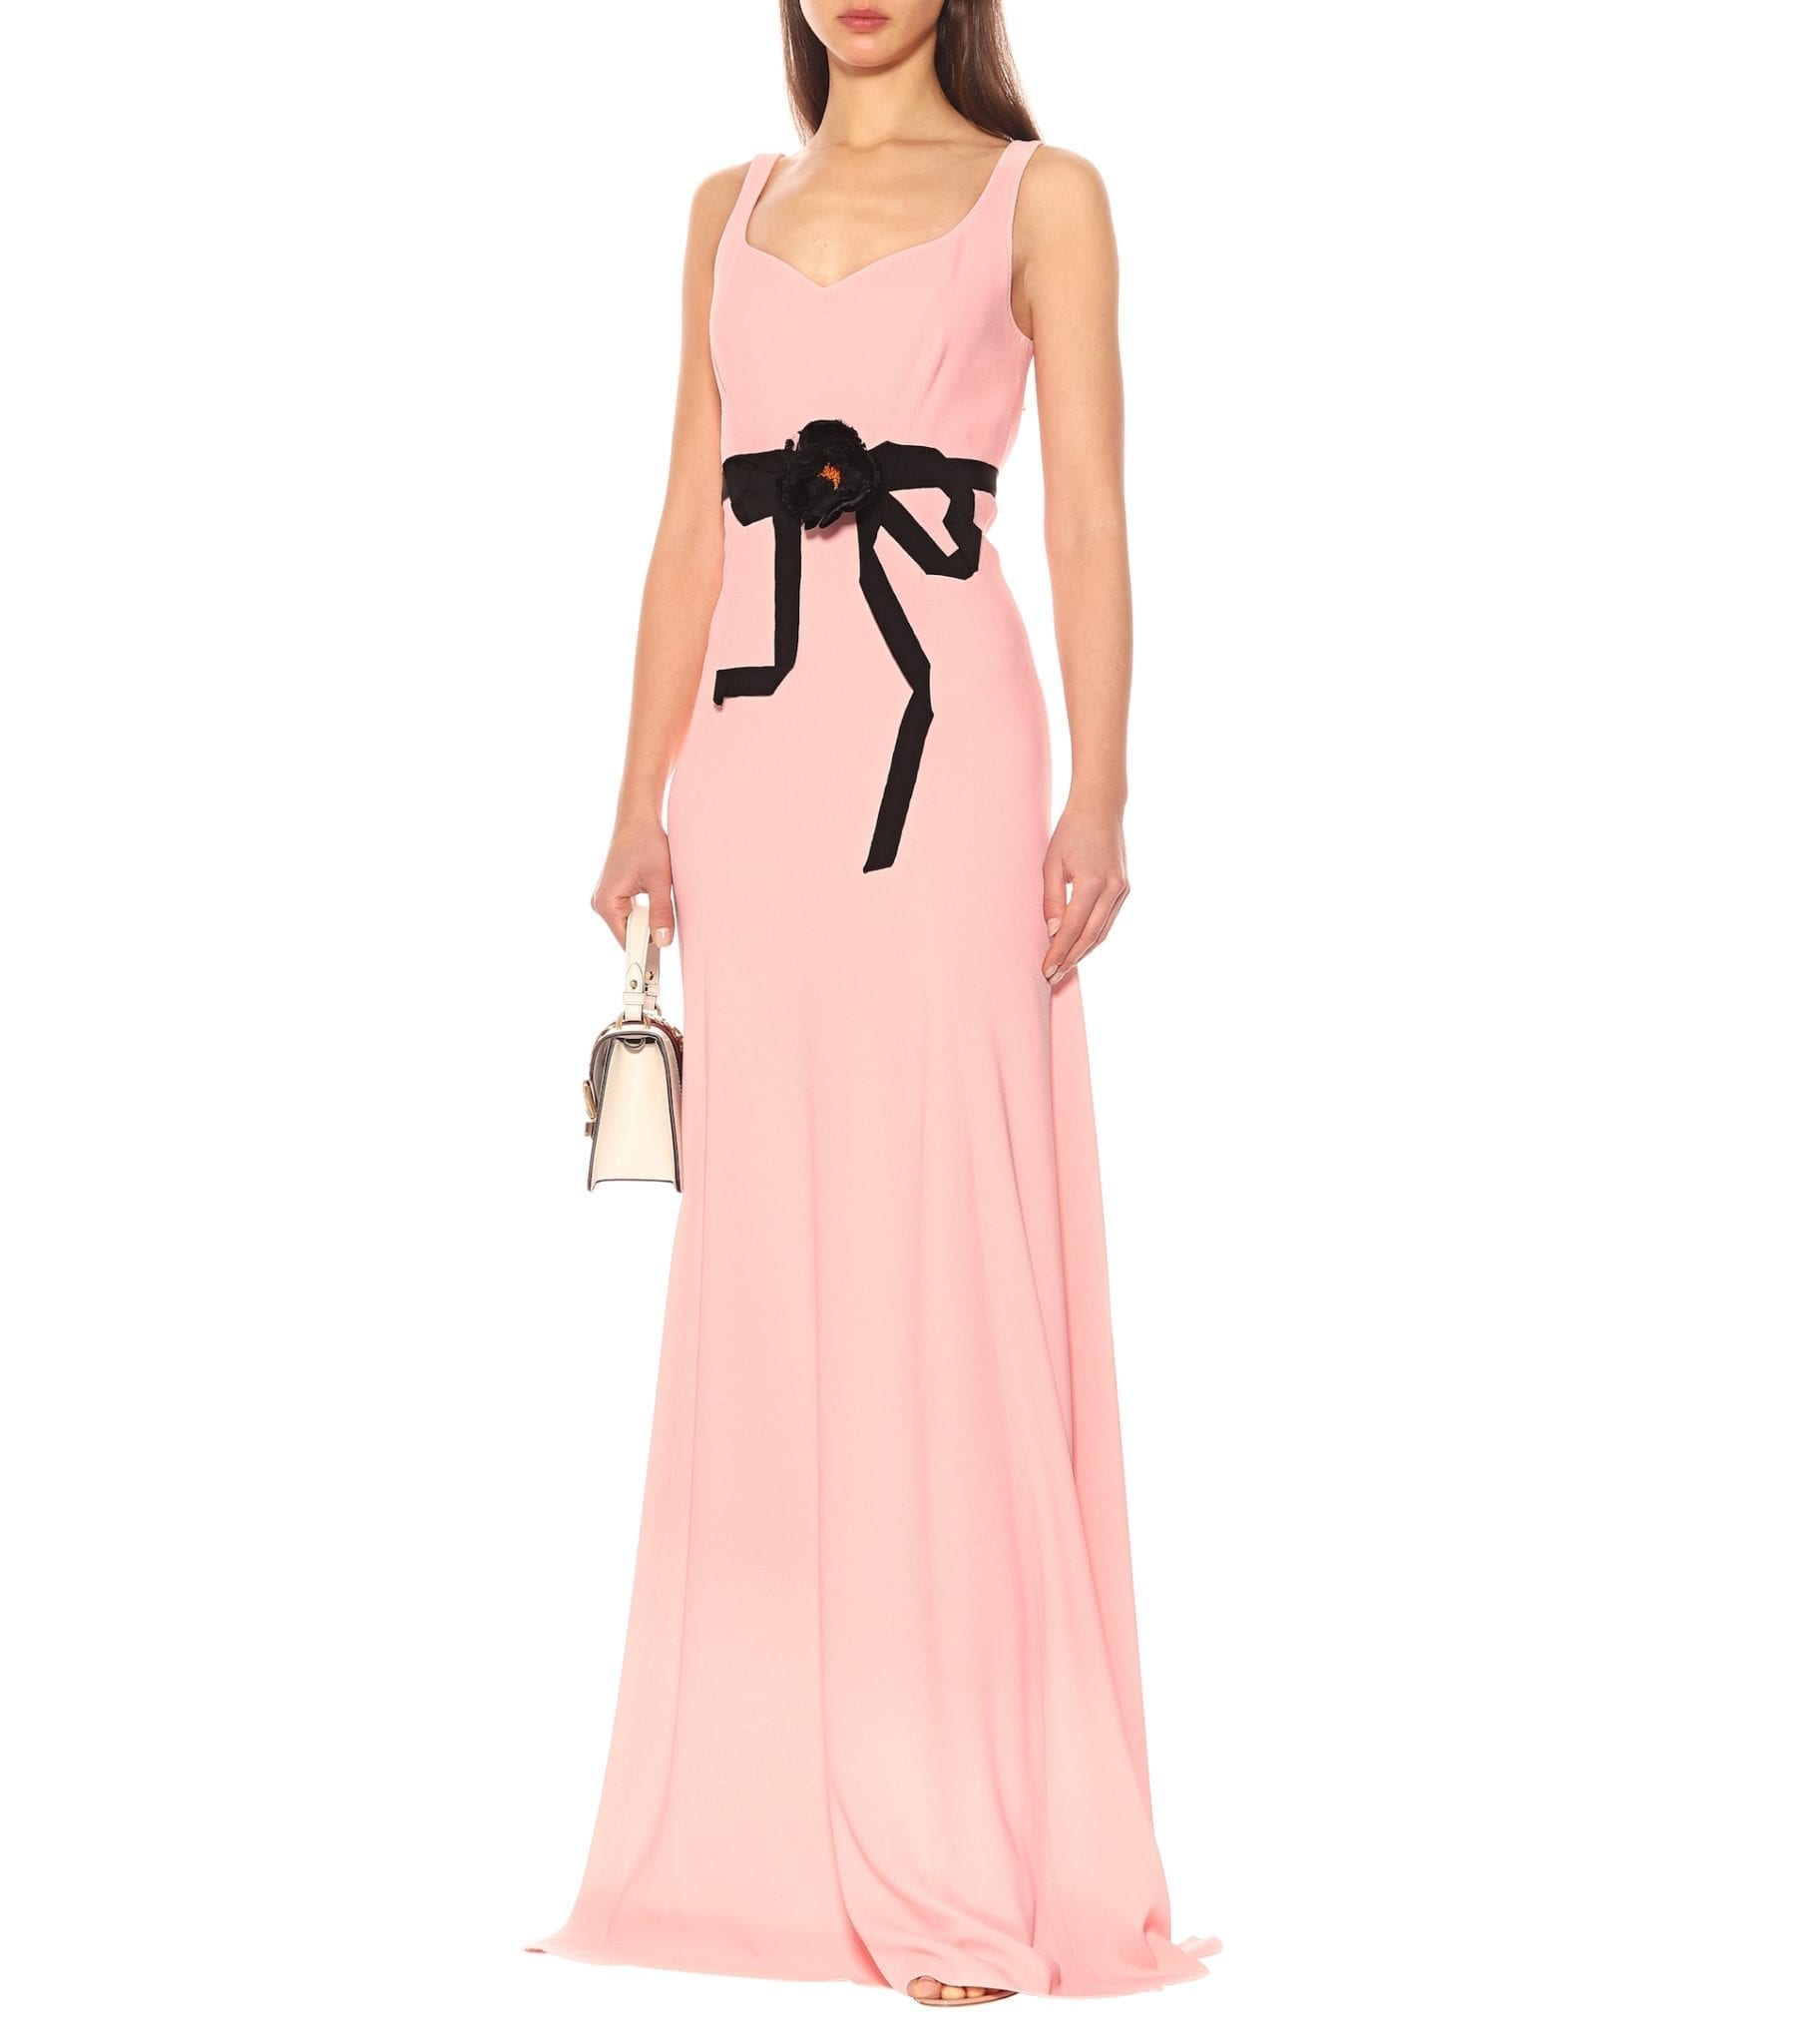 e863b2a9e GUCCI Floral-Embellished Jersey Pink Gown - We Select Dresses